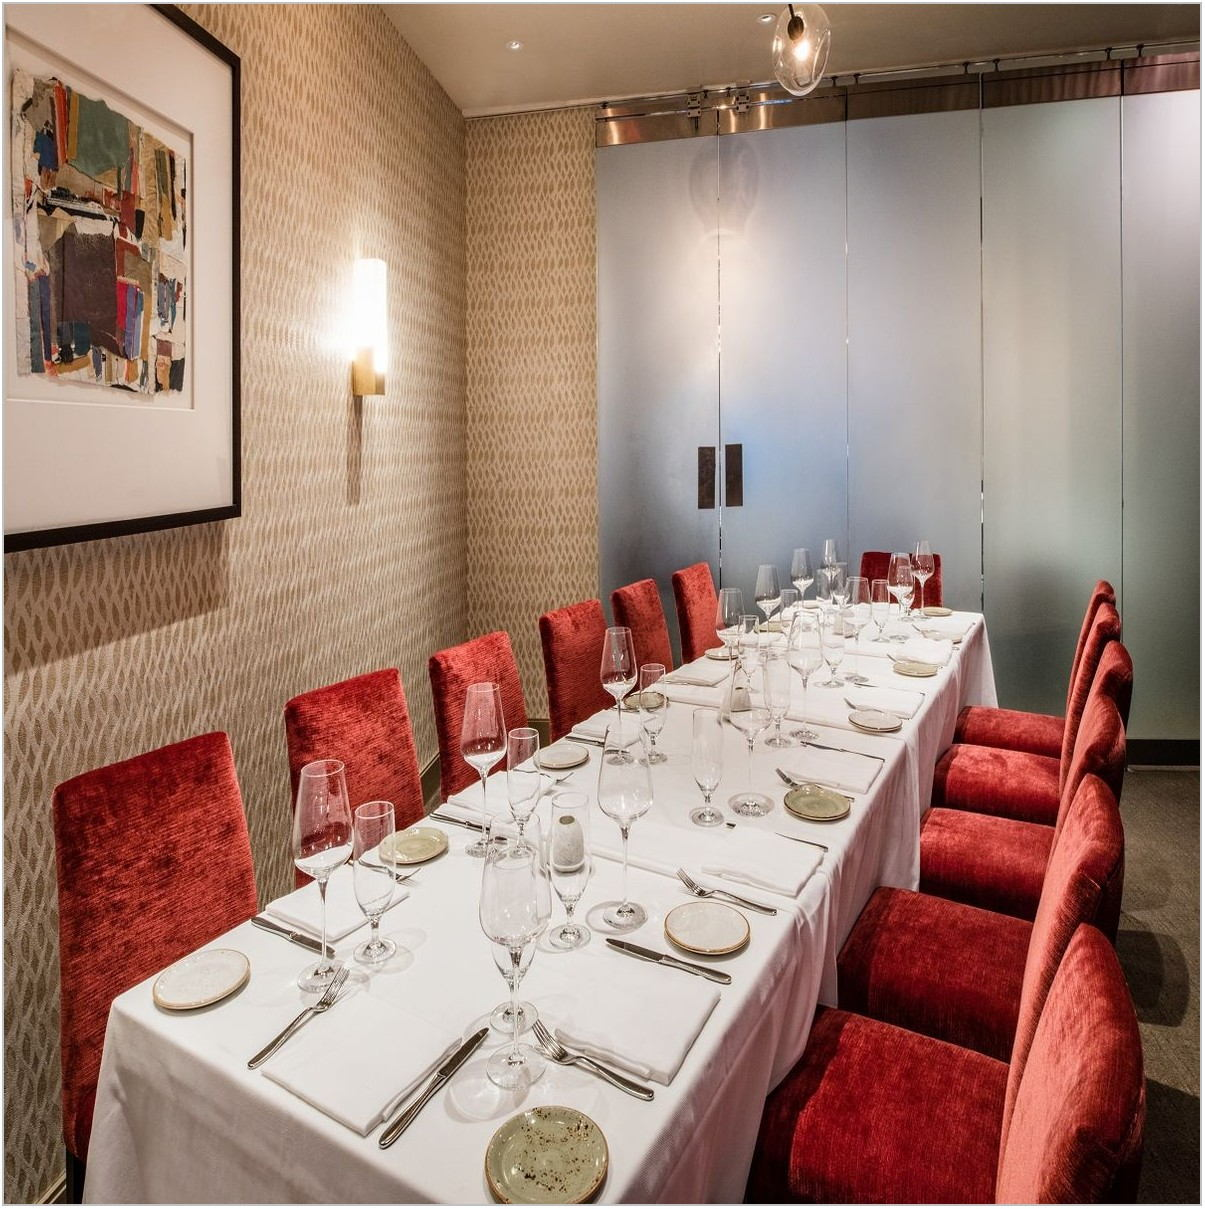 Private Dining Rooms For Small Groups